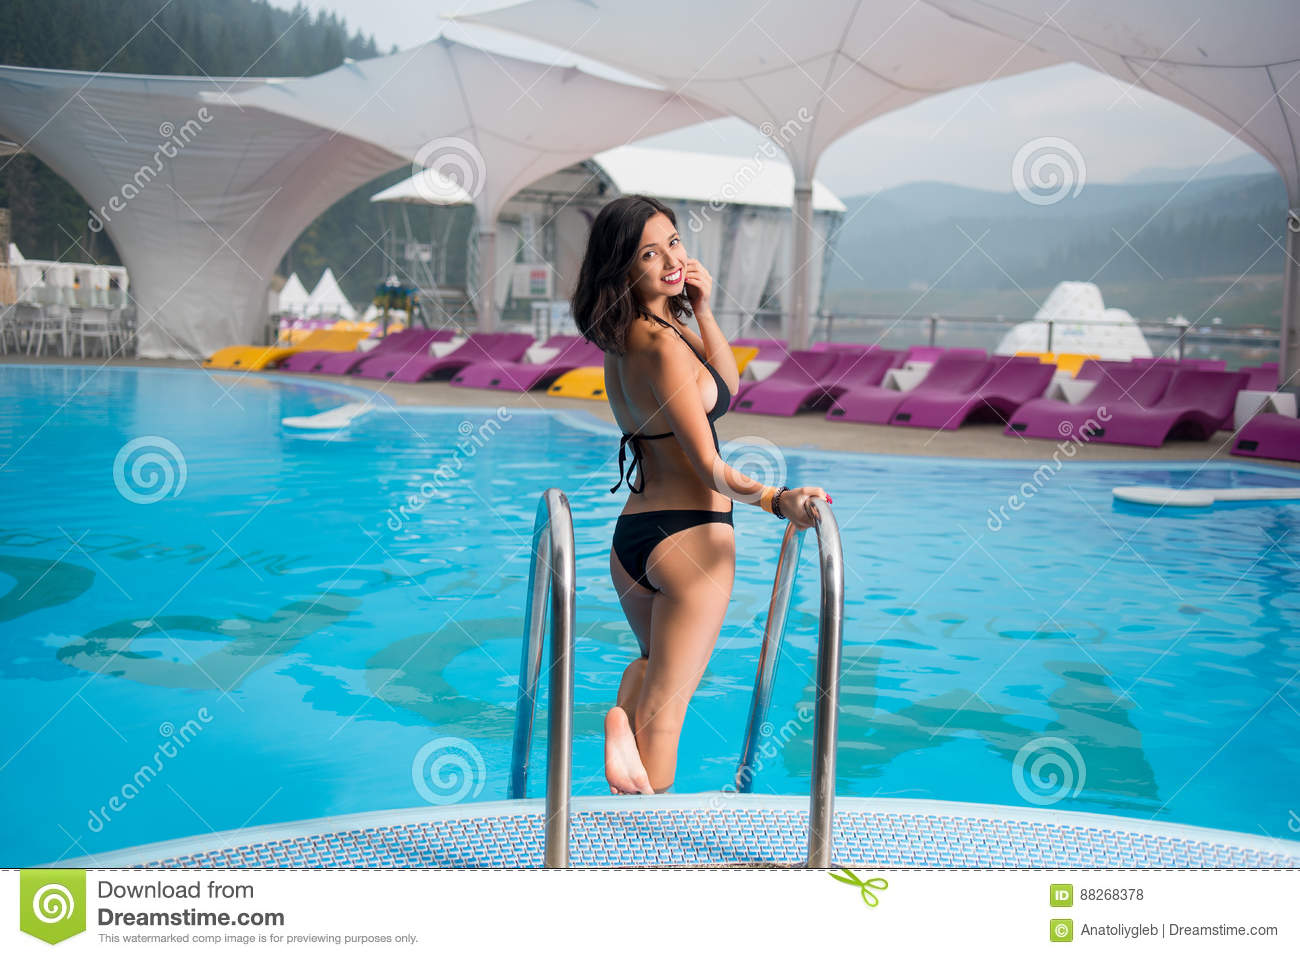 a4d8304d1e0b8 Brunette woman in a black bikini near swimming pool and turning back to  smile at the camera on mountain resort against the backdrop of the mighty  forest and ...